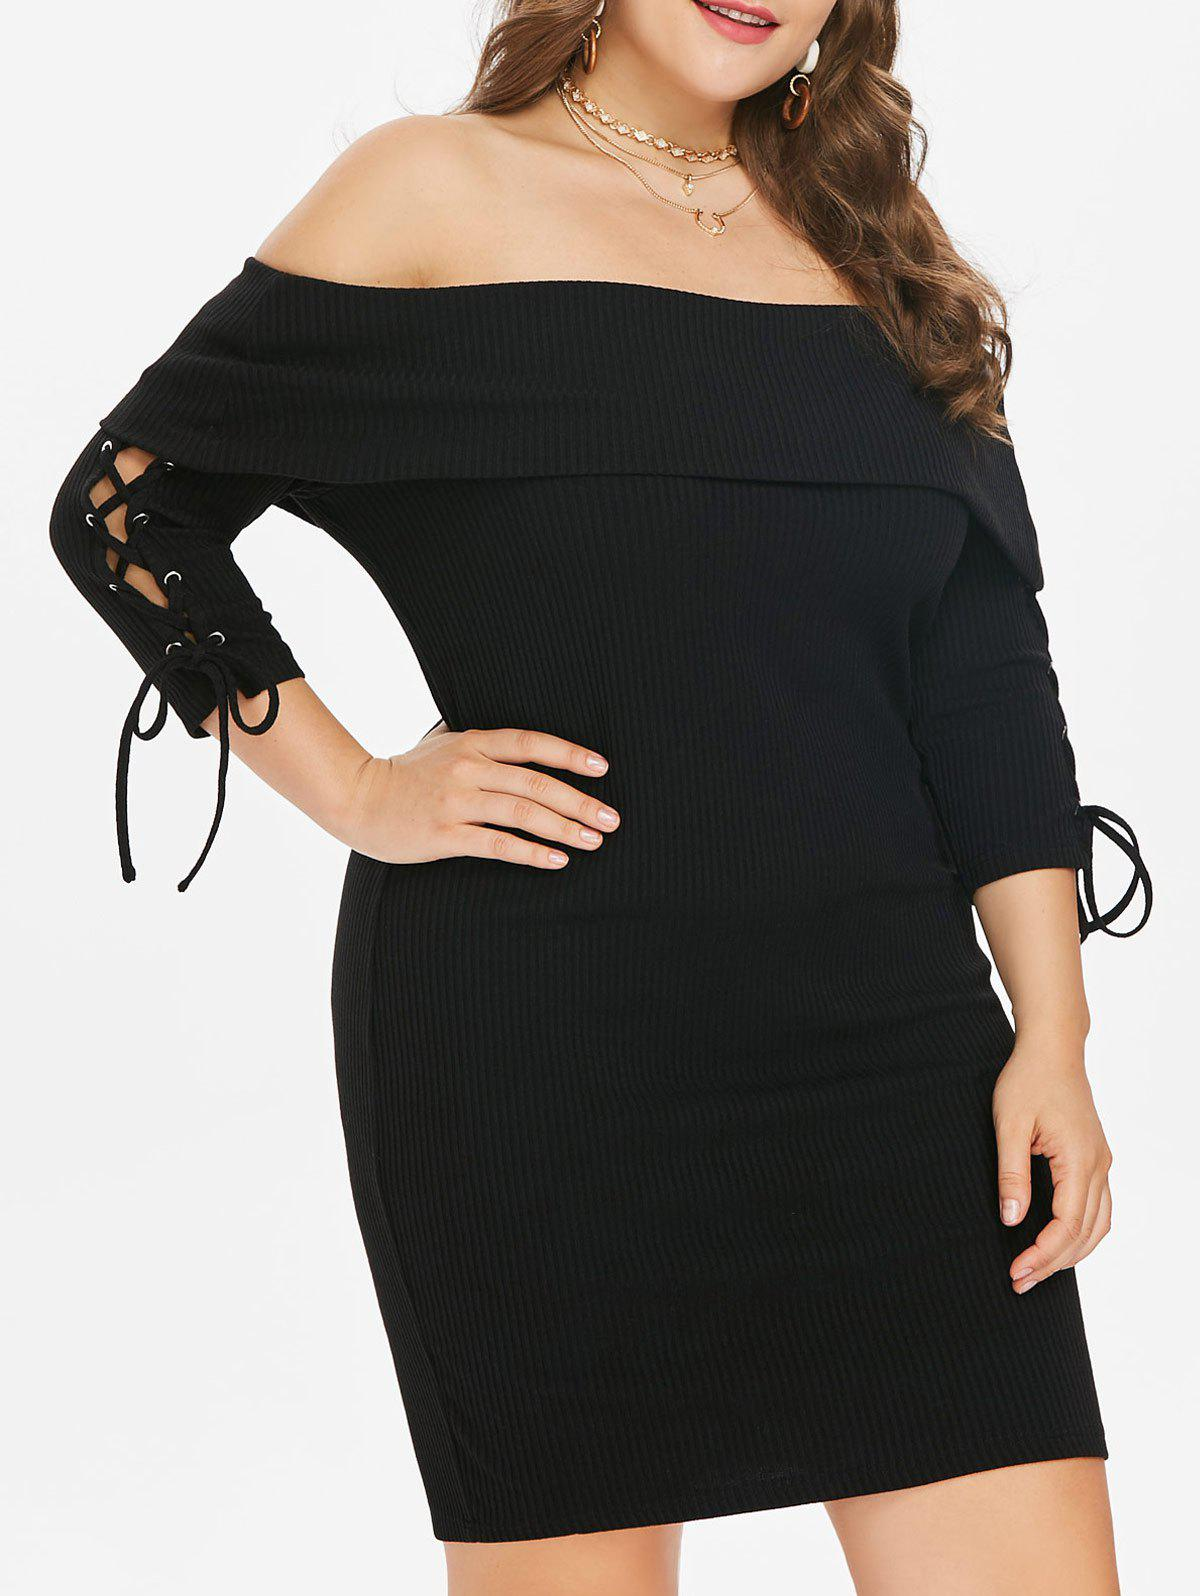 Lace Up Sleeve Plus Size Mini Bodycon Dress - BLACK 1X